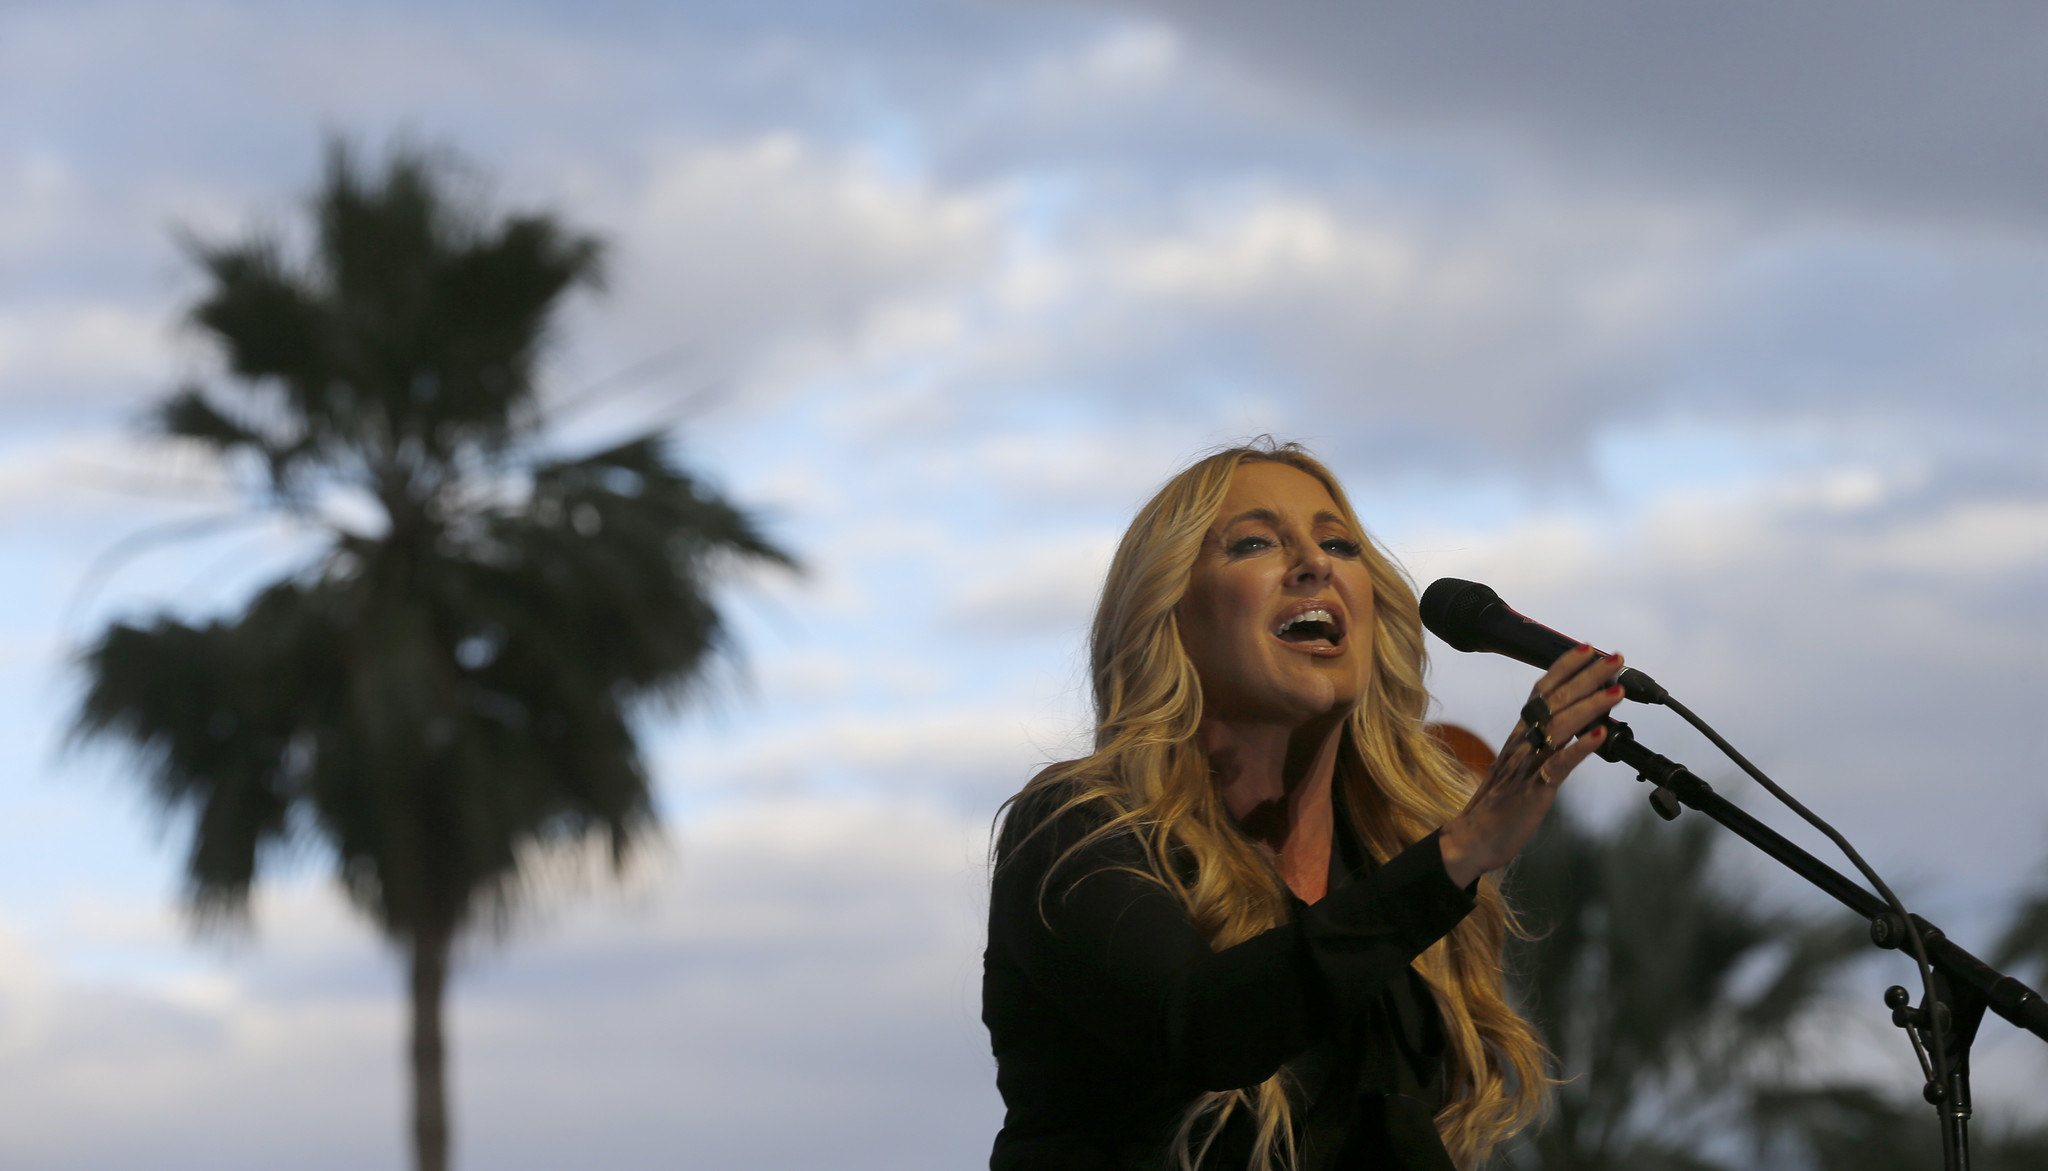 Lee Ann Womack performs at Stagecoach 2016.